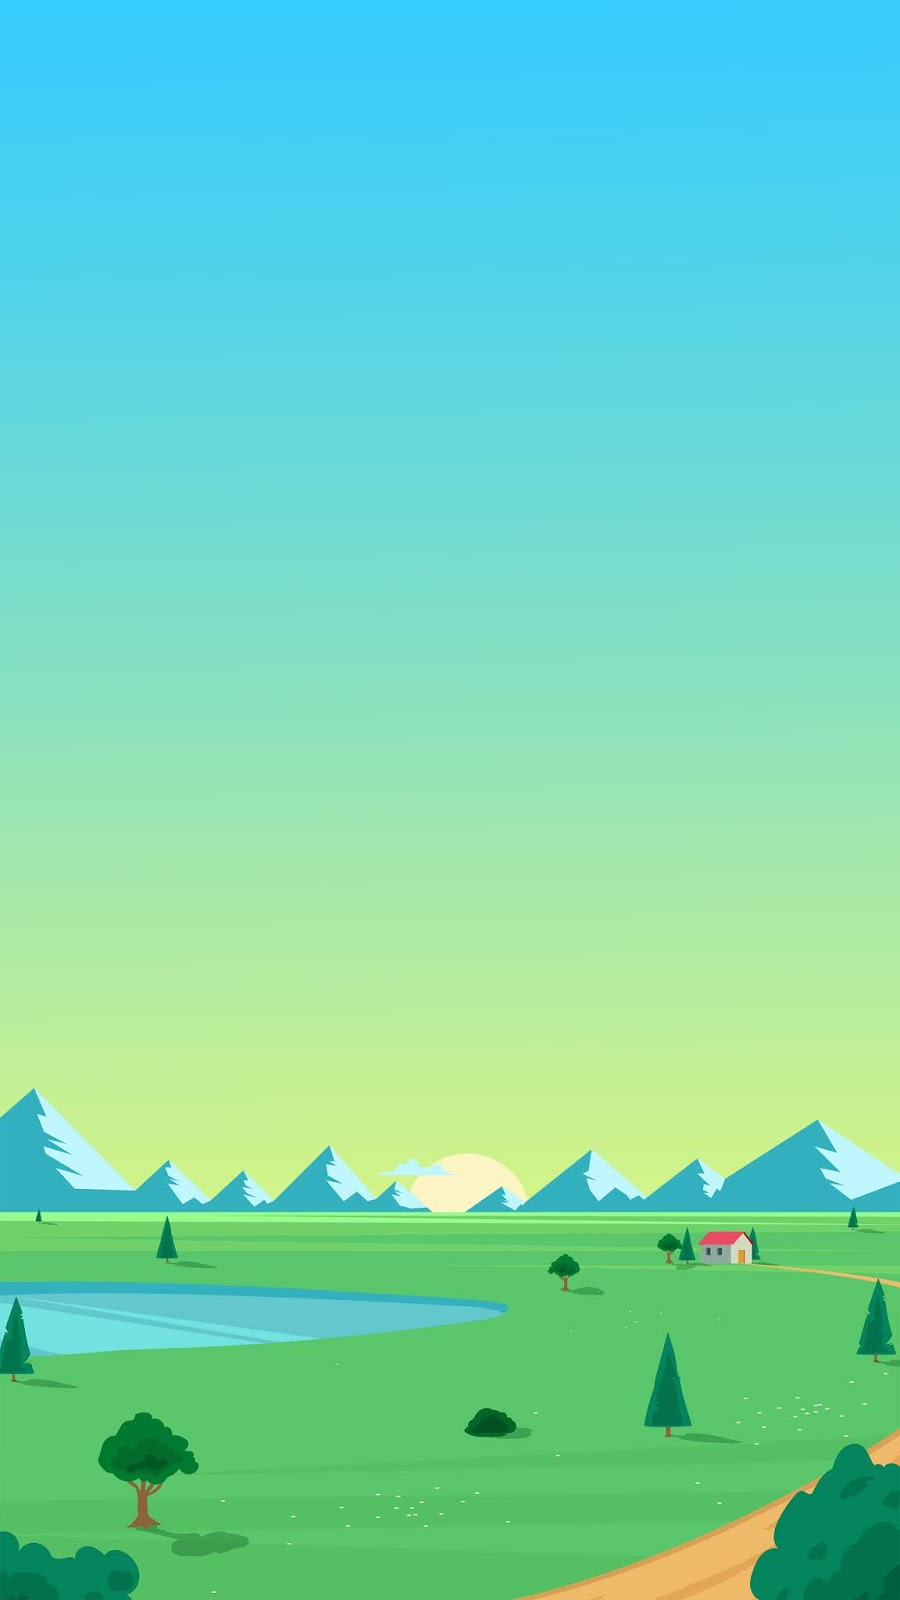 minimalist rural landscape wallpaper for phone in 4K resolution